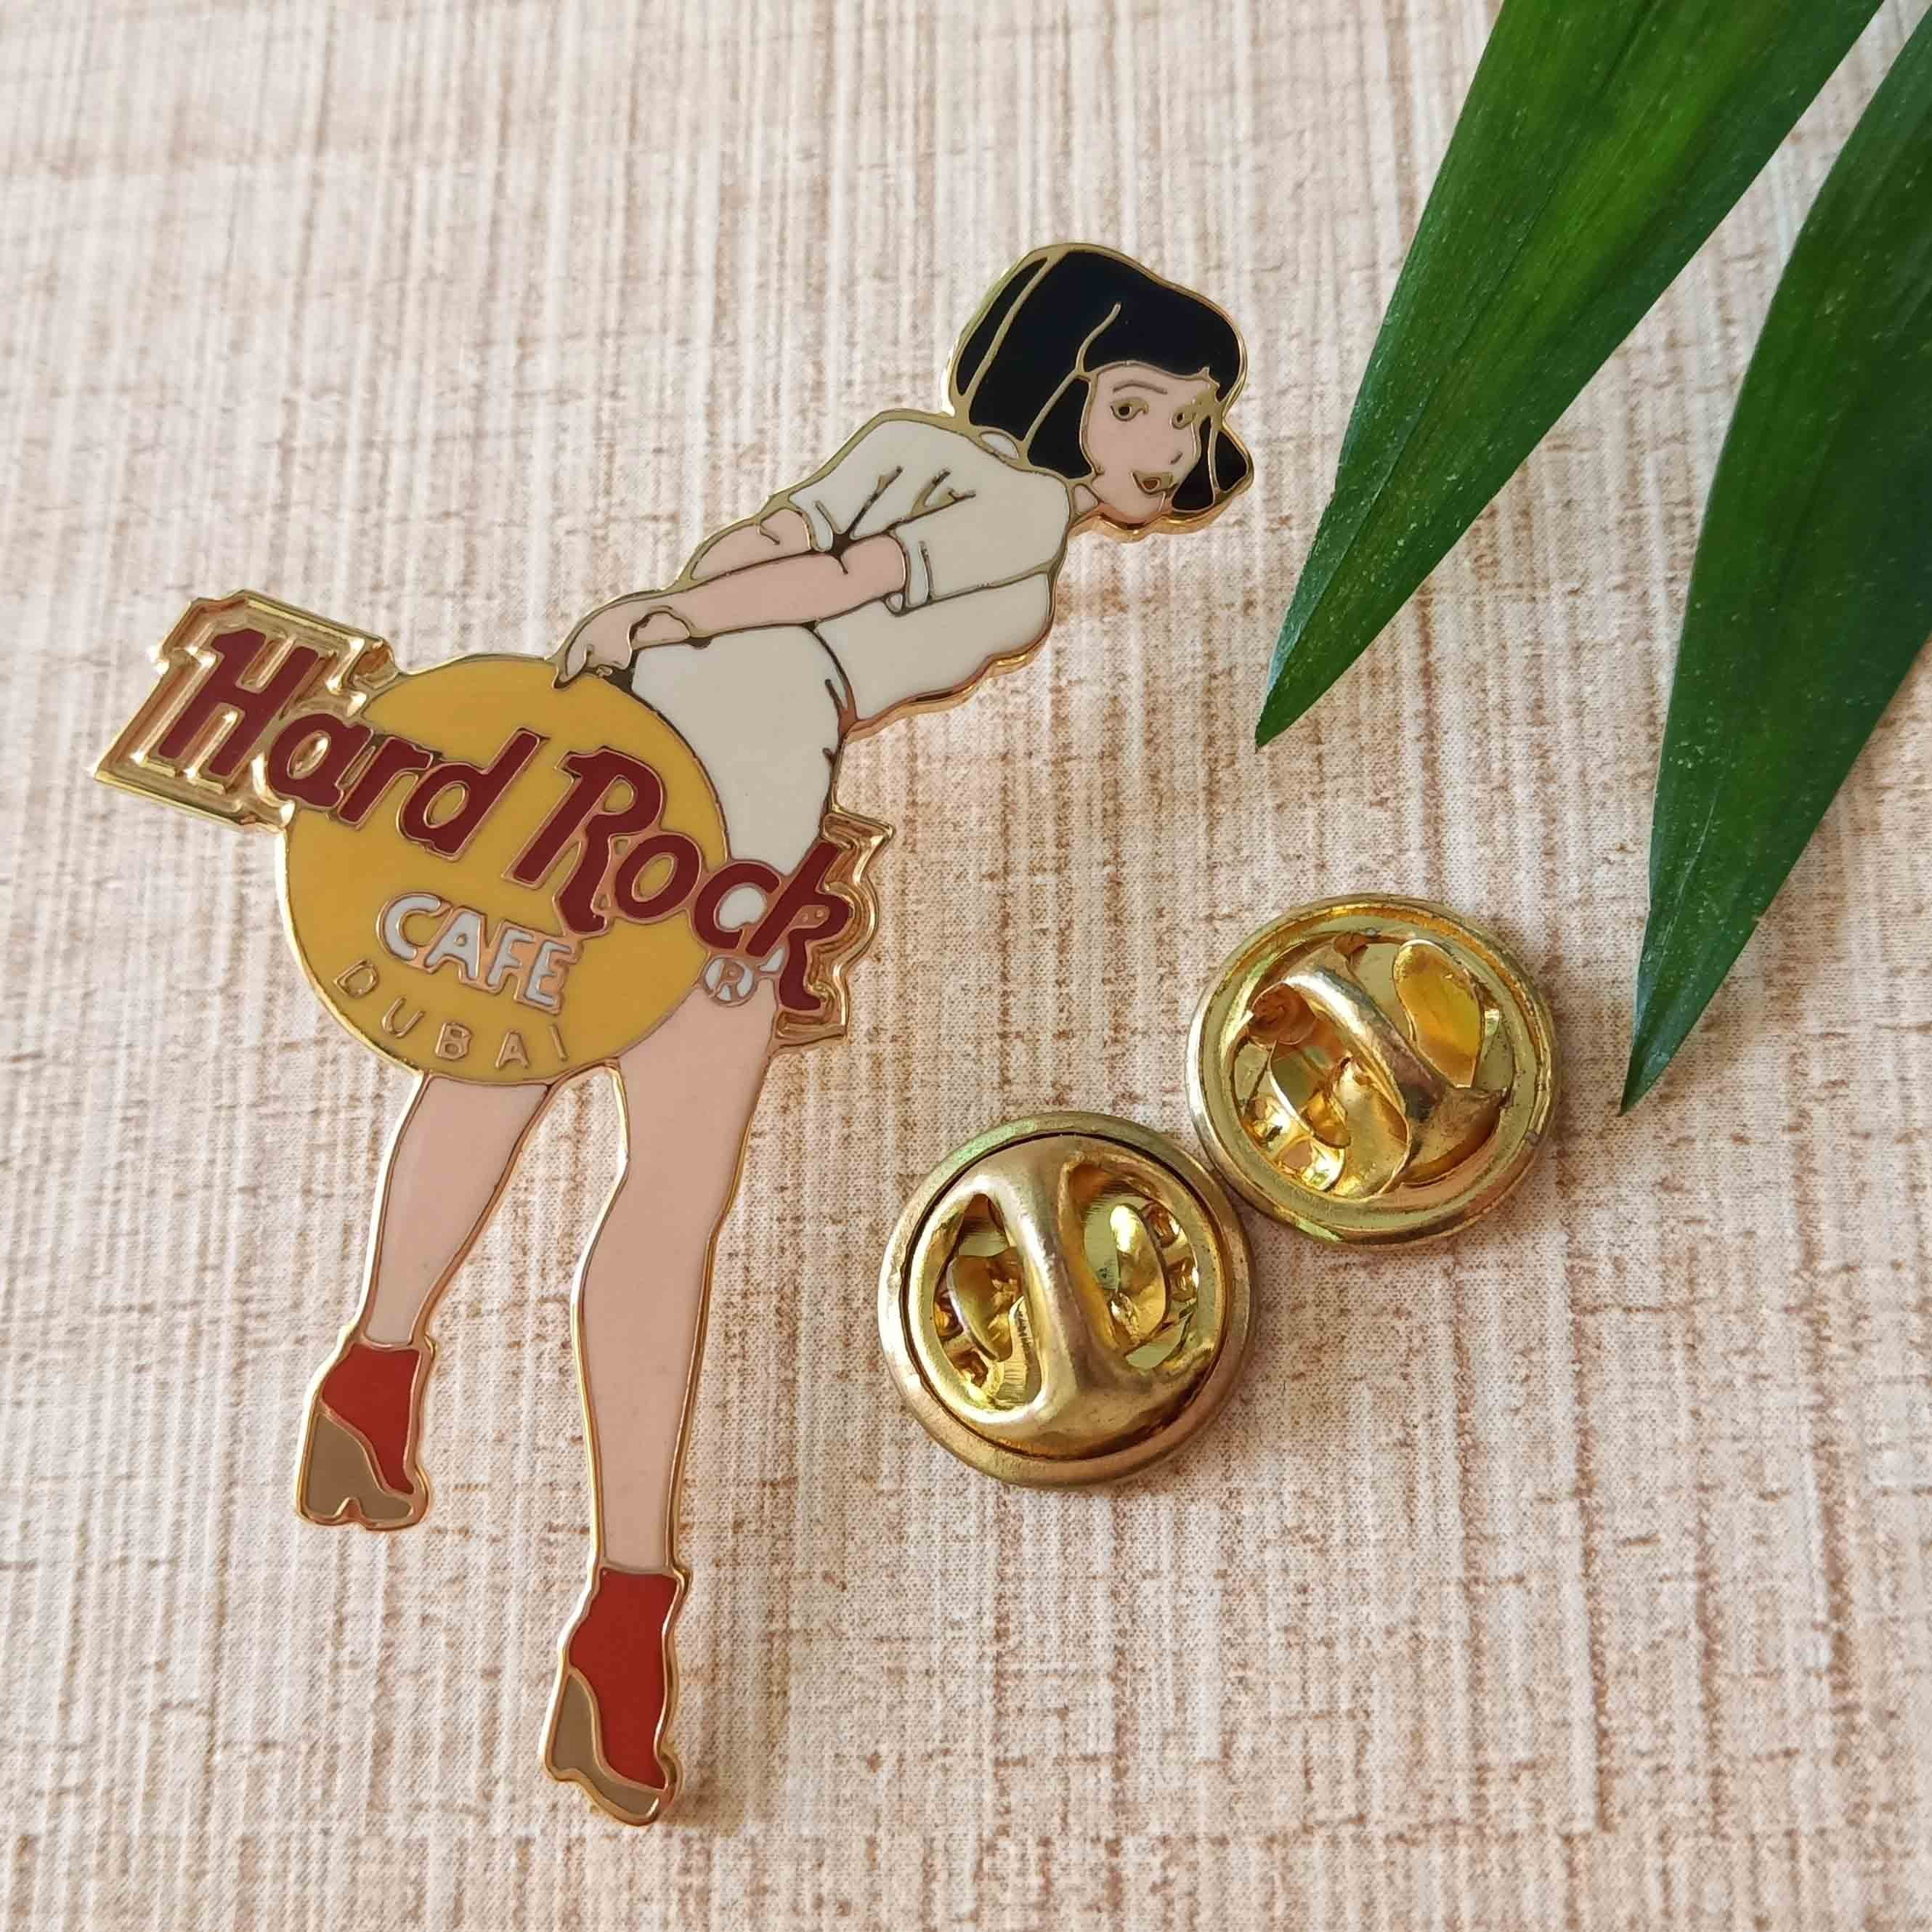 Hot selling 2019 wholesale custom pins soft enamel anime girl enamel pins